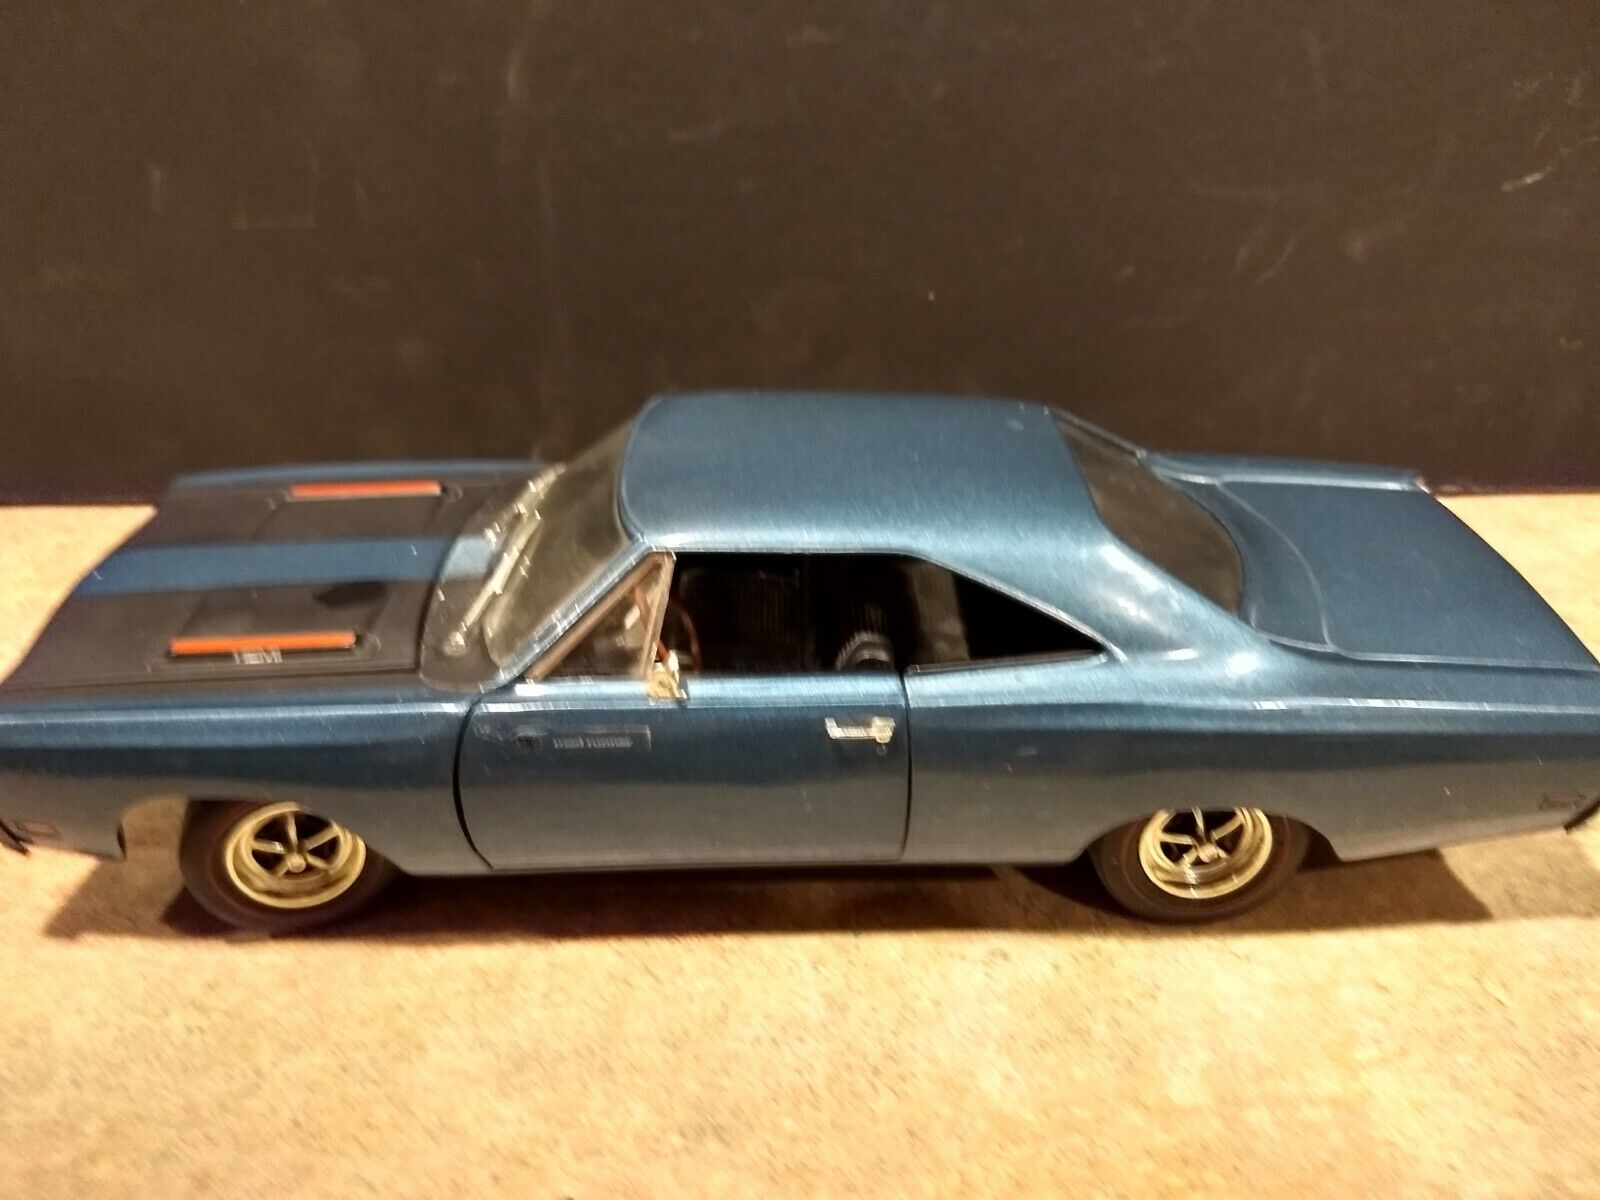 1969 PLYMOUTH Die-cast Scale 1 18. ERTL. Displayed. No Box.